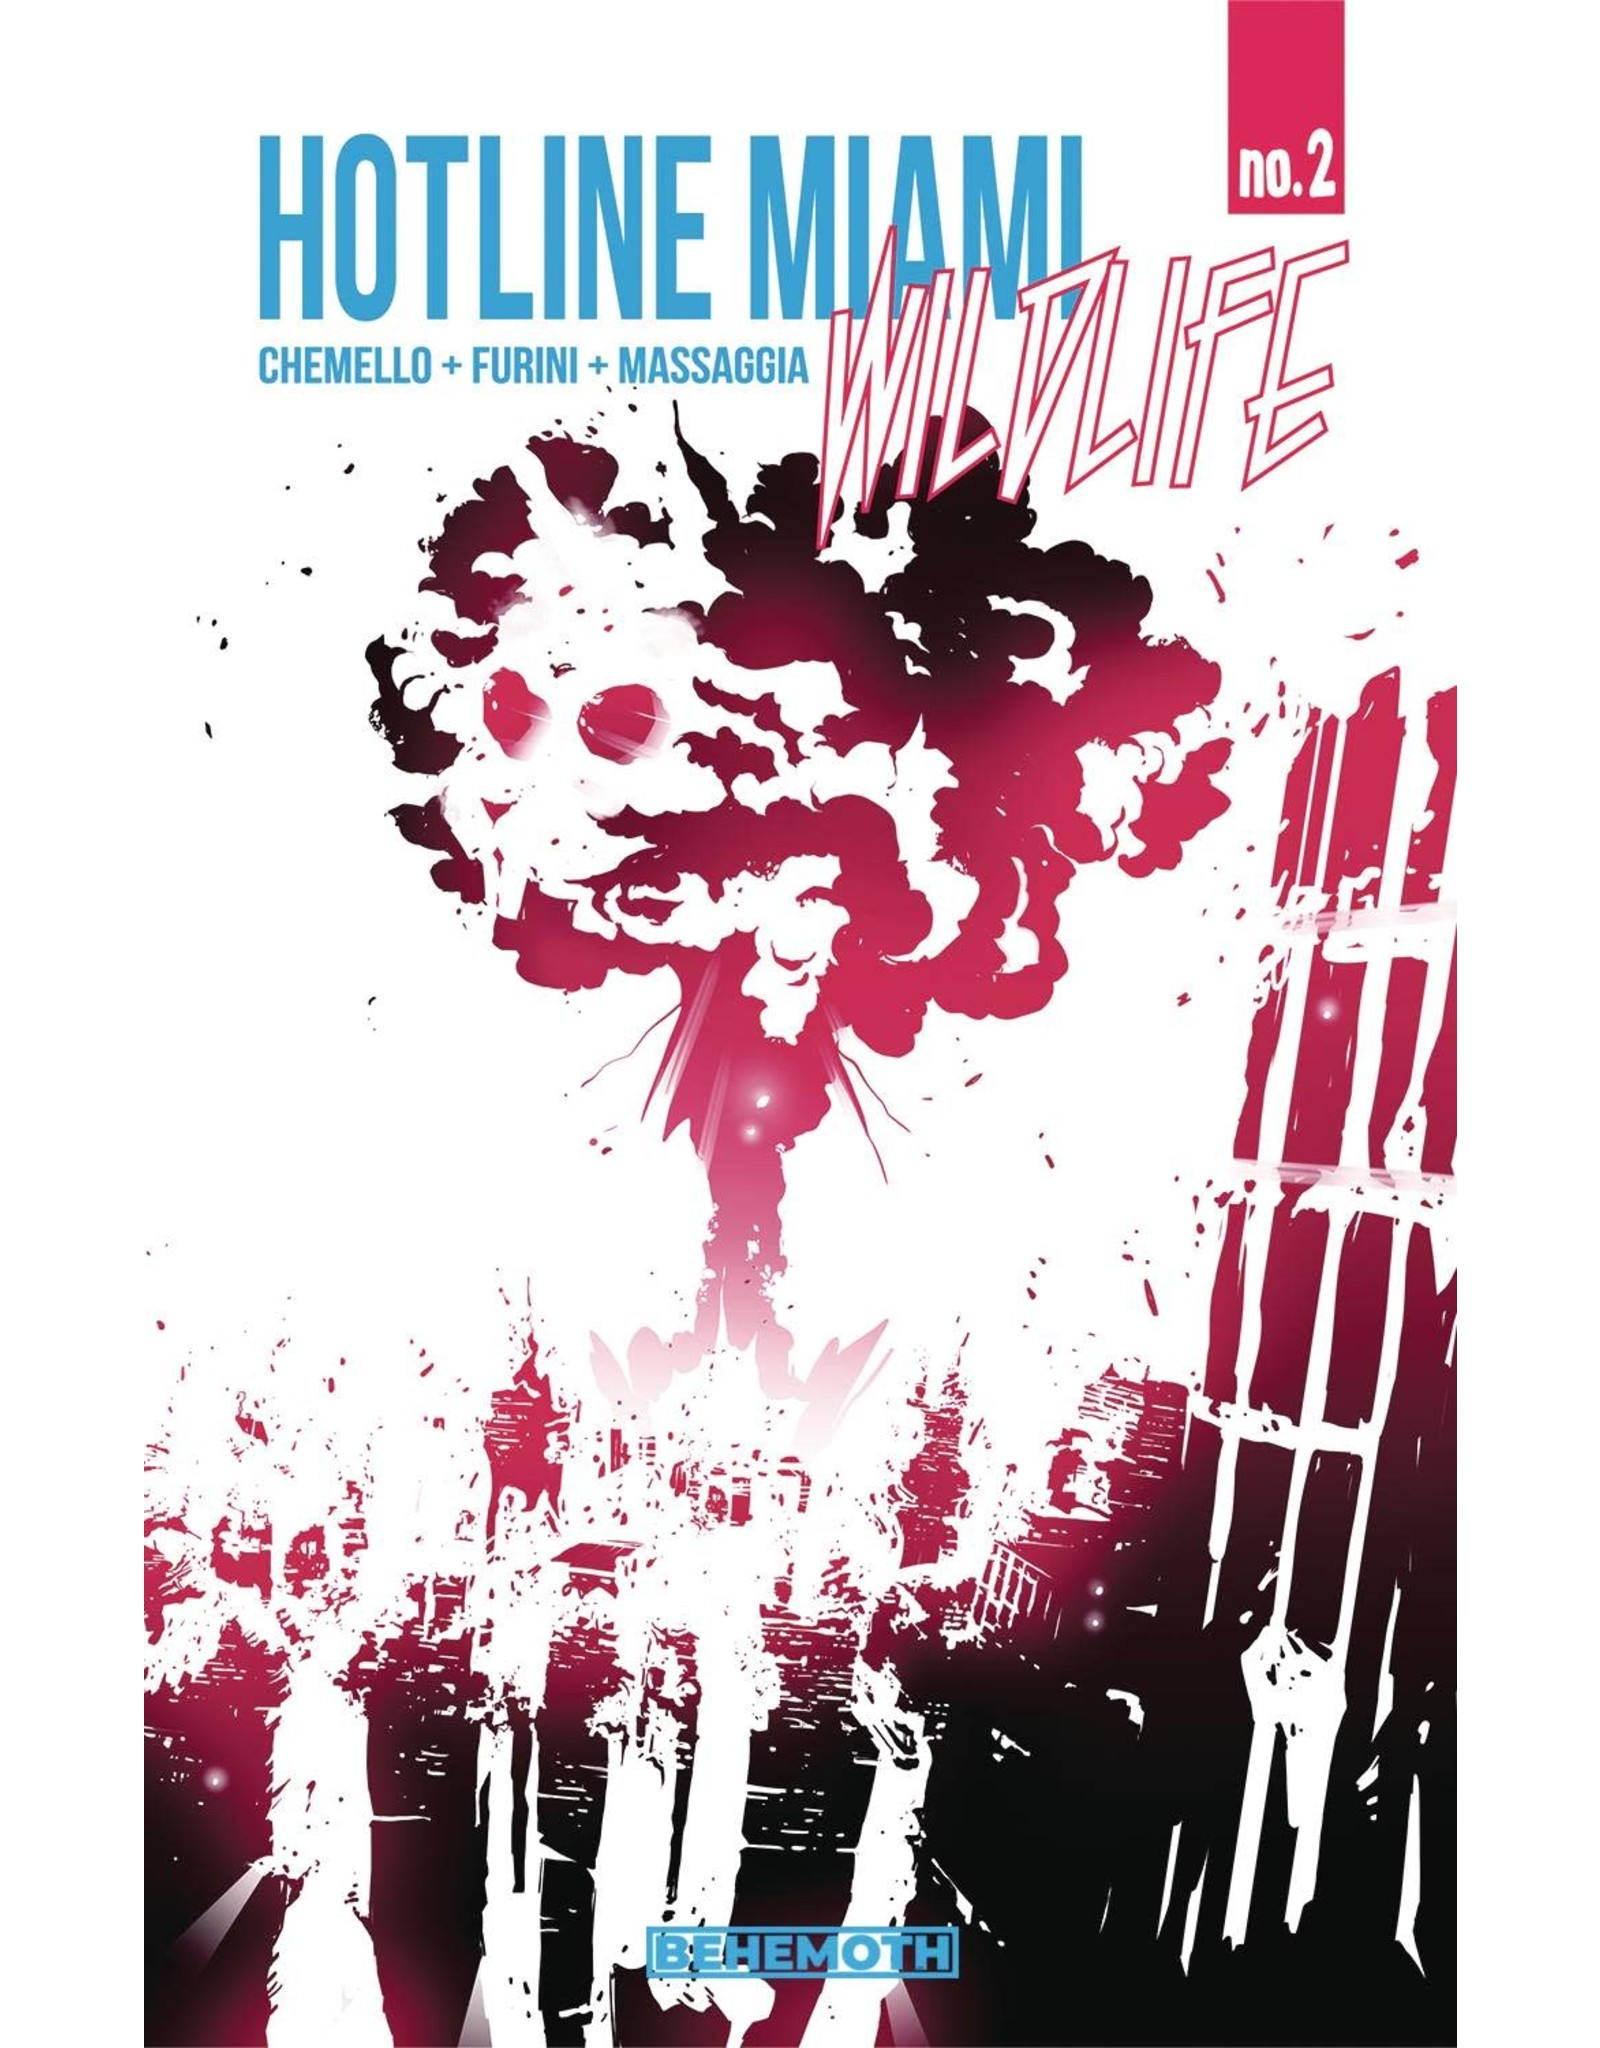 BEHEMOTH COMICS HOTLINE MIAMI WILDLIFE #2 (OF 8) (MR)